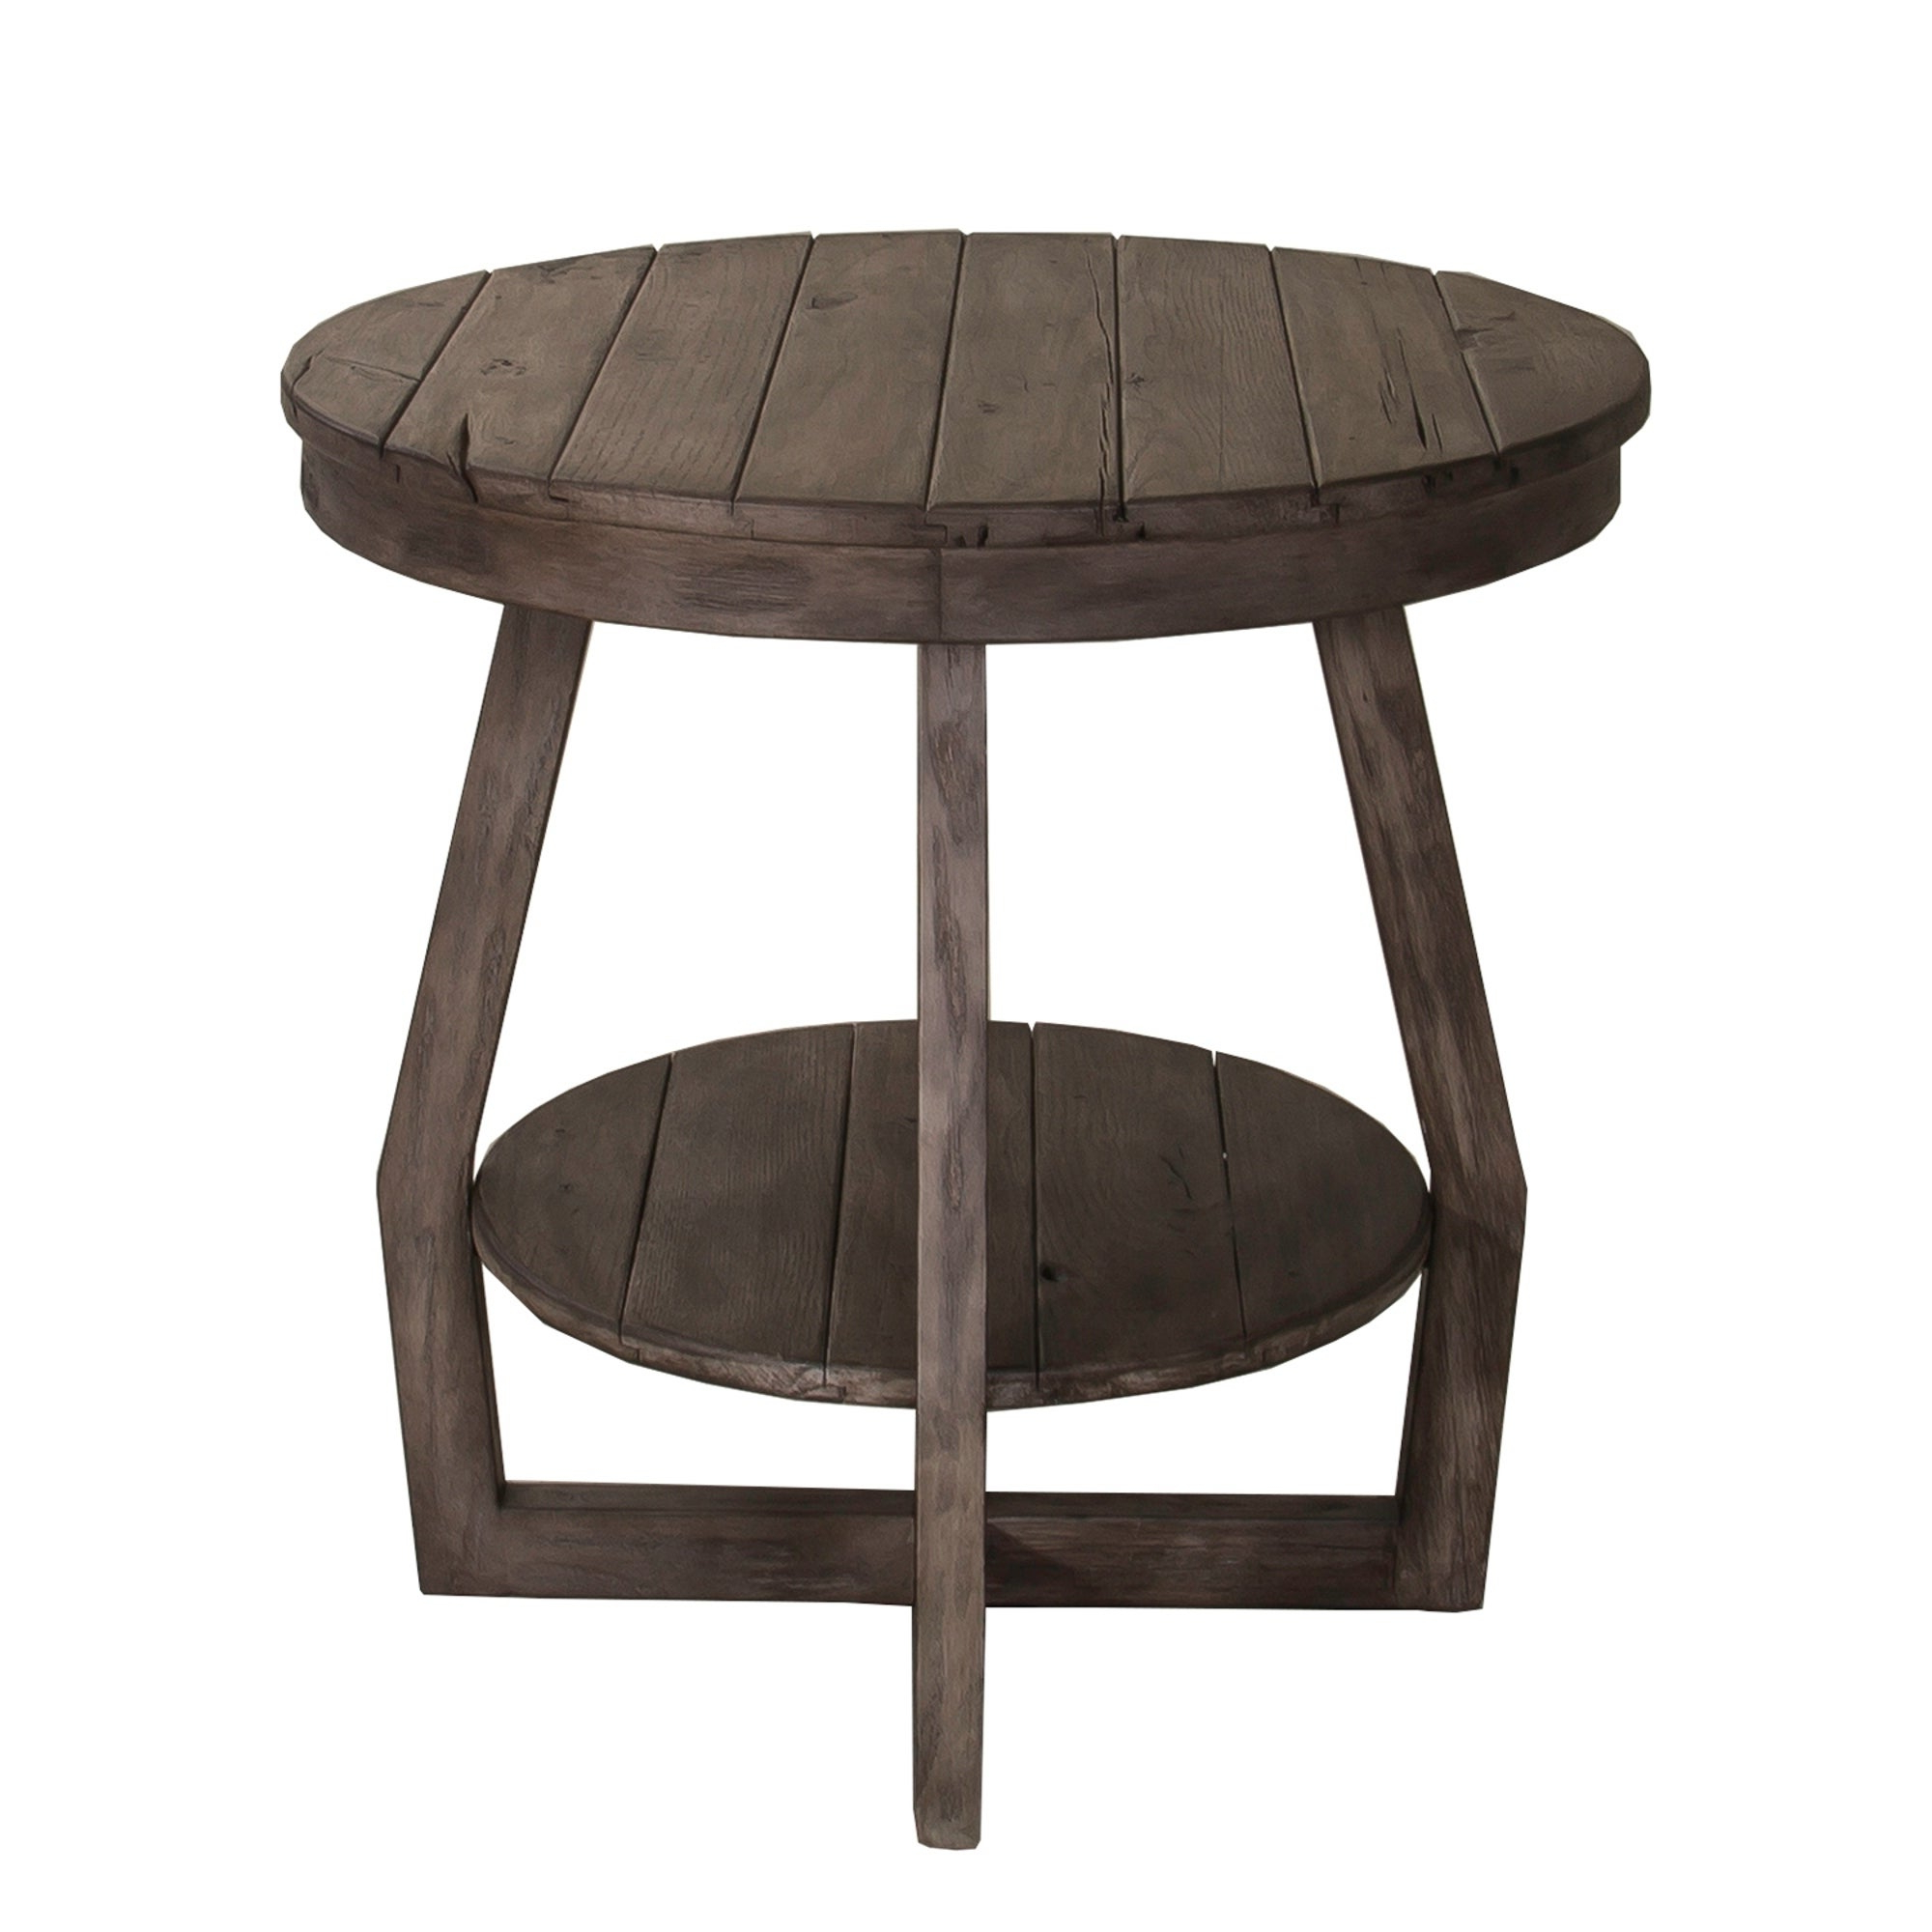 Widely Used The Gray Barn Rosings Park Grey Wash Cocktail Tables In The Gray Barn Rosings Park Grey Washed 3 Piece Occasional Set (View 20 of 20)